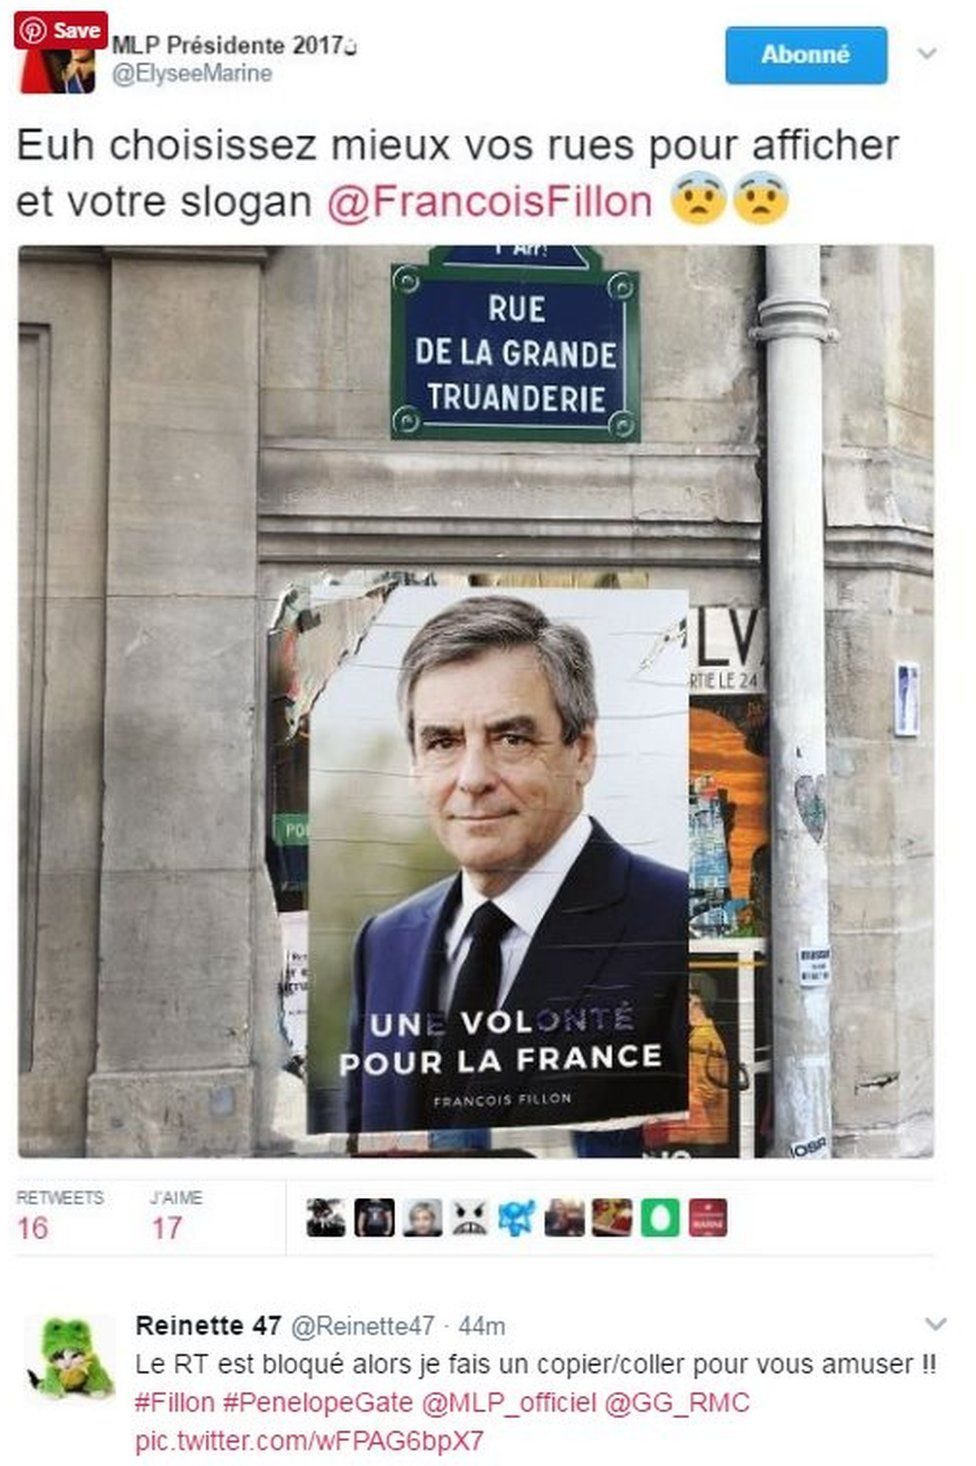 A defaced campaign poster - originally said 'Une volonte pour la France' but it's been defaced and reads 'Un vol pour la France' - ie from 'desire' to 'theft'